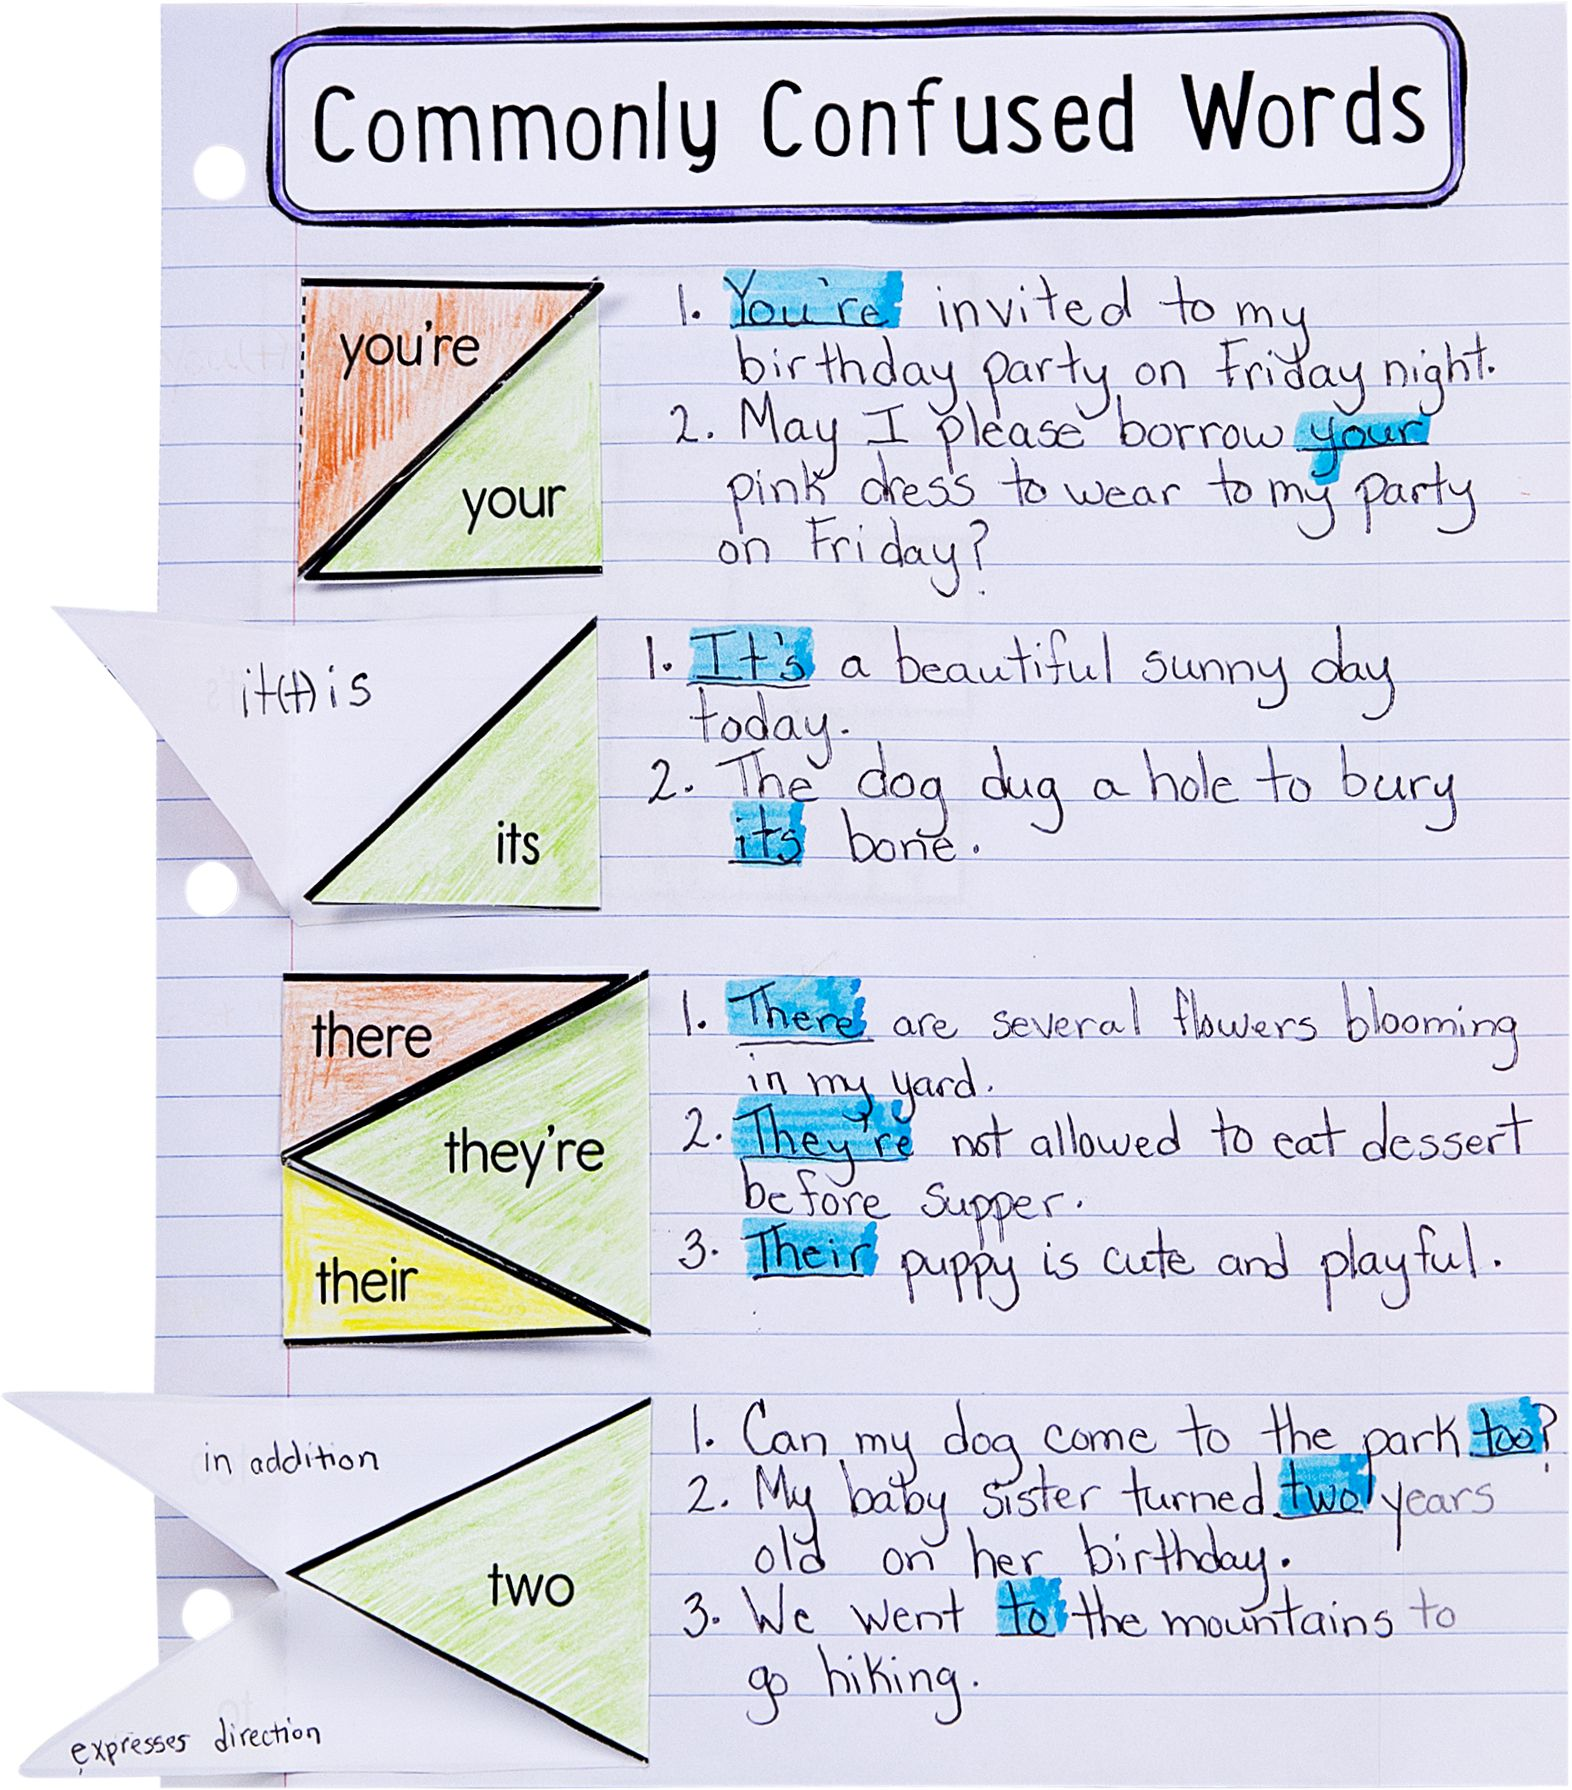 small resolution of 18 Commonly confused words ideas   commonly confused words